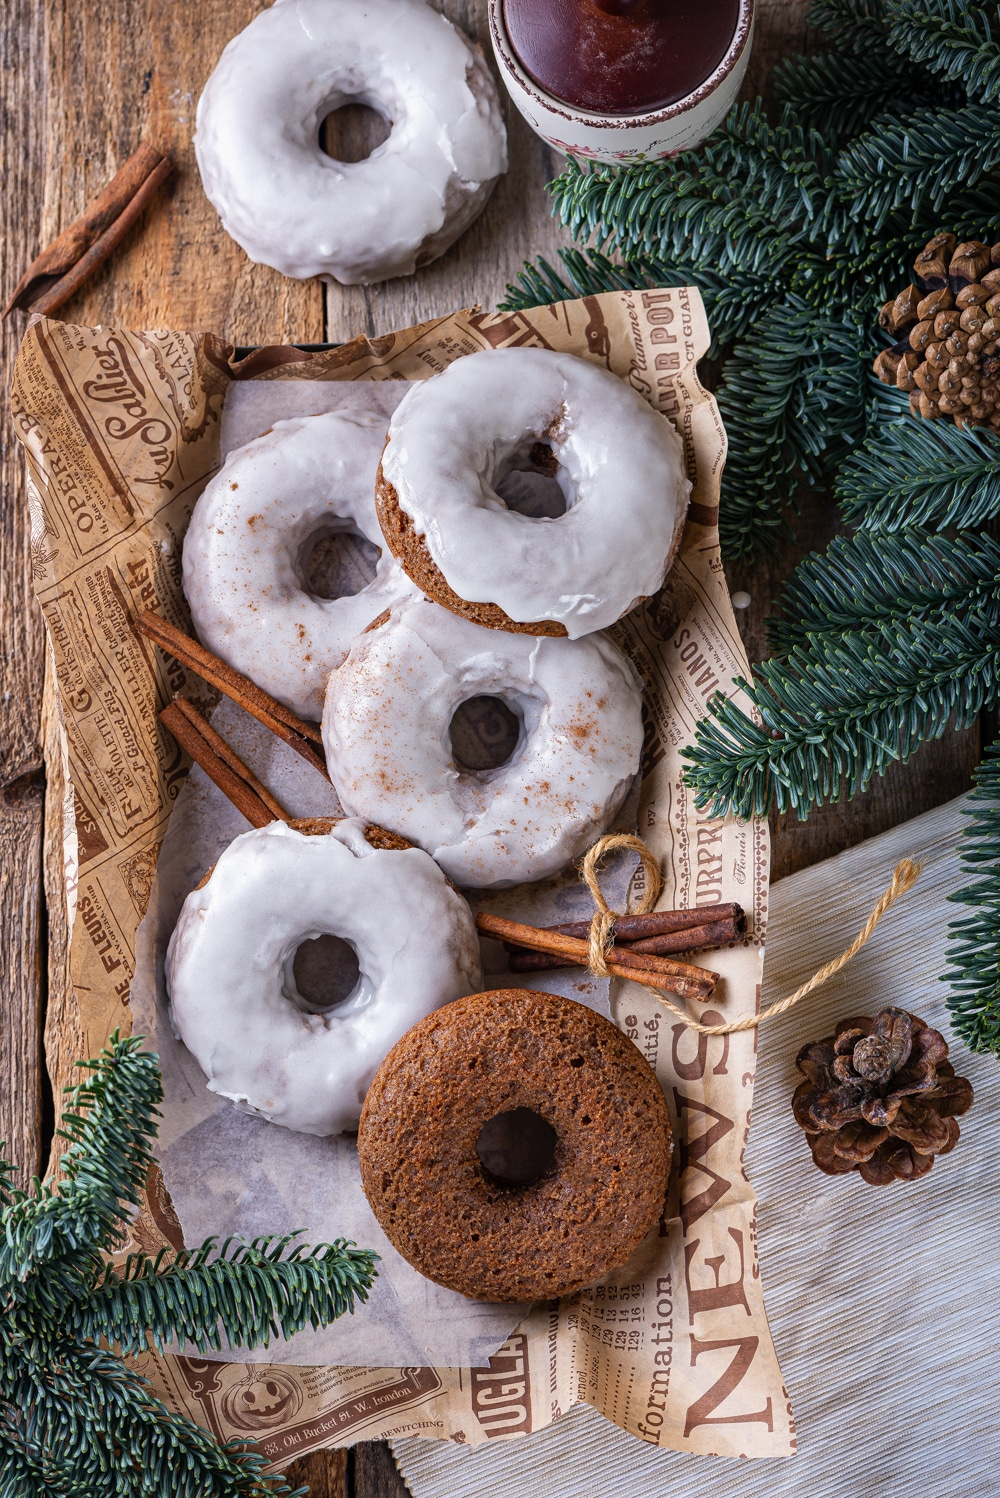 Five glazed gingerbread donuts and one plain gingerbread donut scattered on a piece of paper with two sticks of cinnamon on the sides of the donuts. Pine branches are at the bottom left and top right of the paper. One glazed gingerbread donut is set behind the piece of paper. Everything is on top of a wooden table.